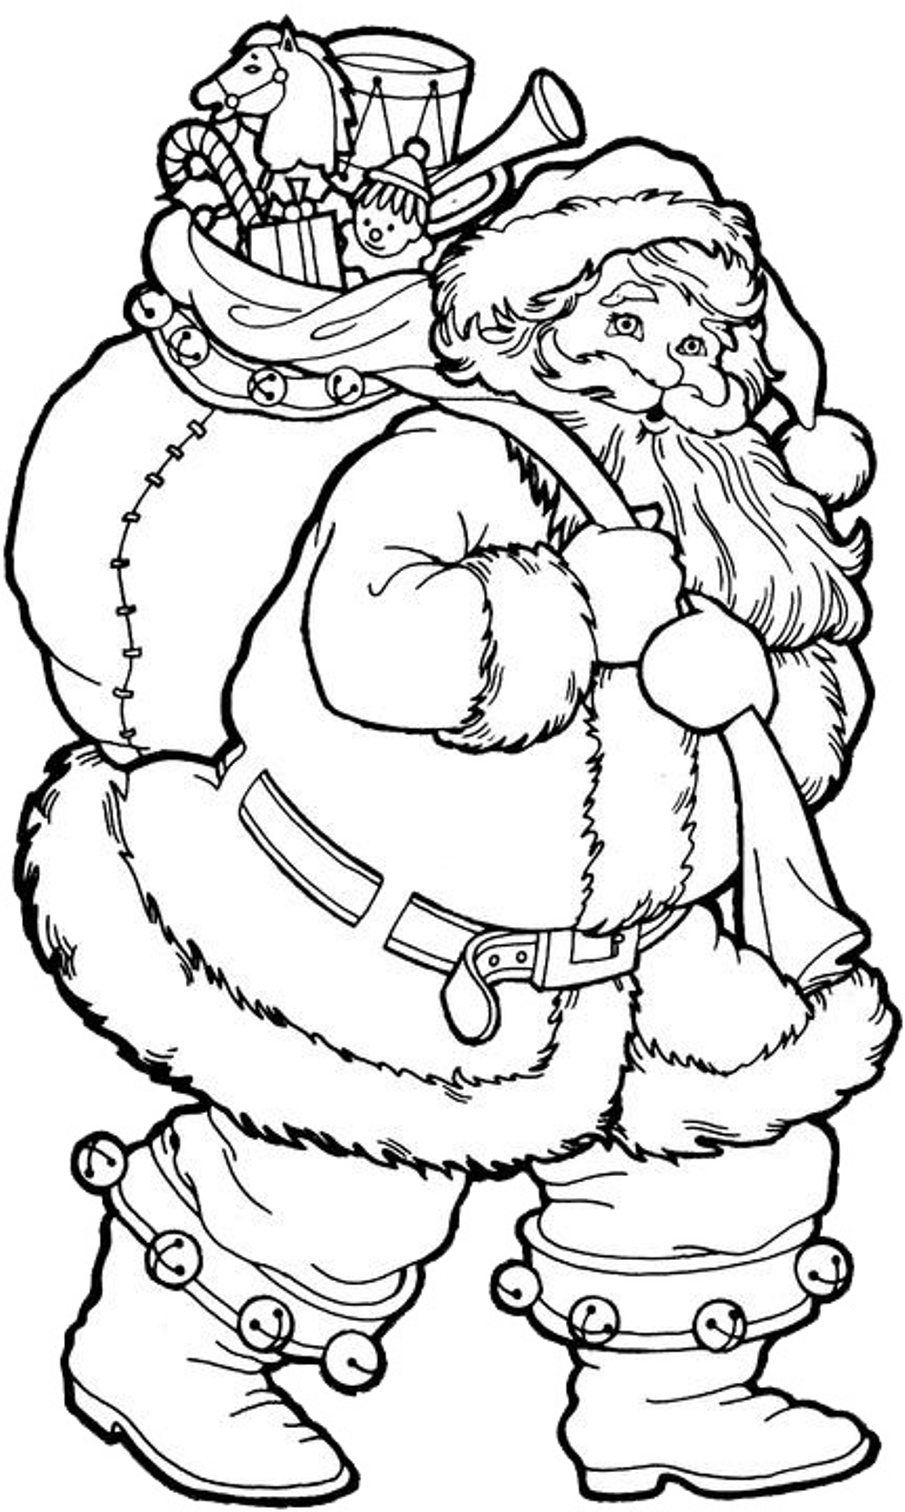 Santa Coloring Pages Coloring pages, Christmas colors